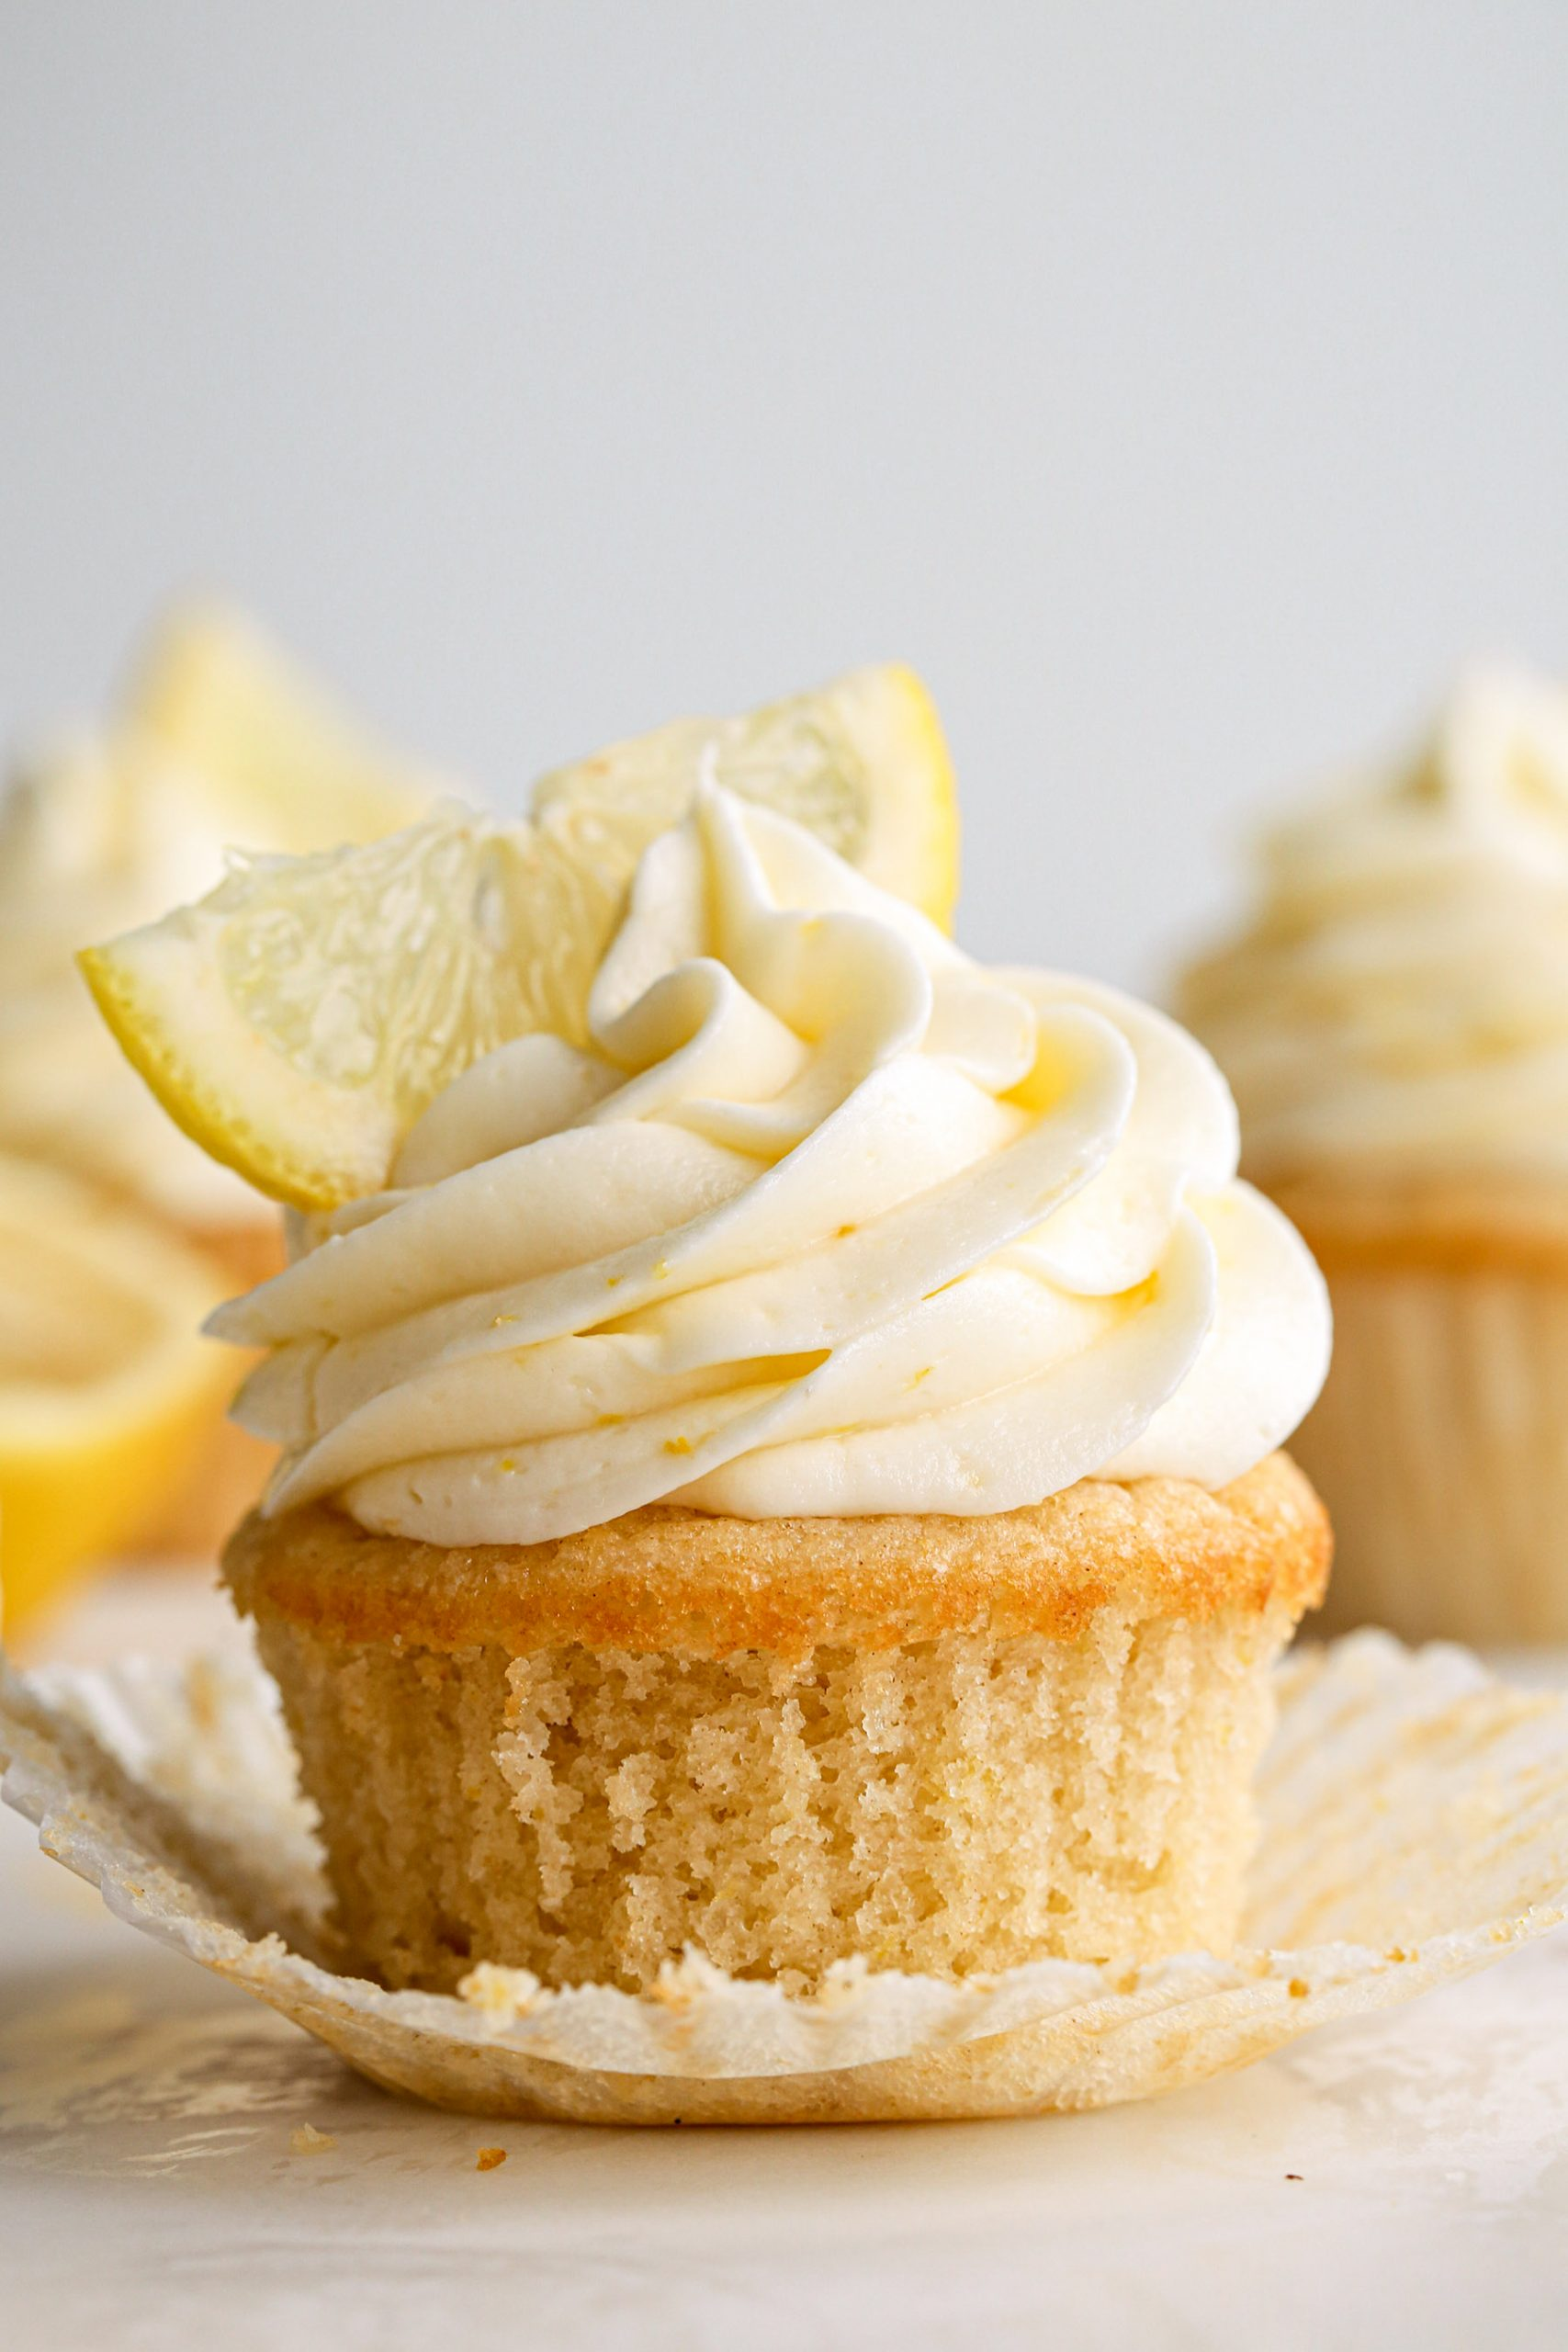 Lemon Cupcakes | Vegan friendly with gluten free option.